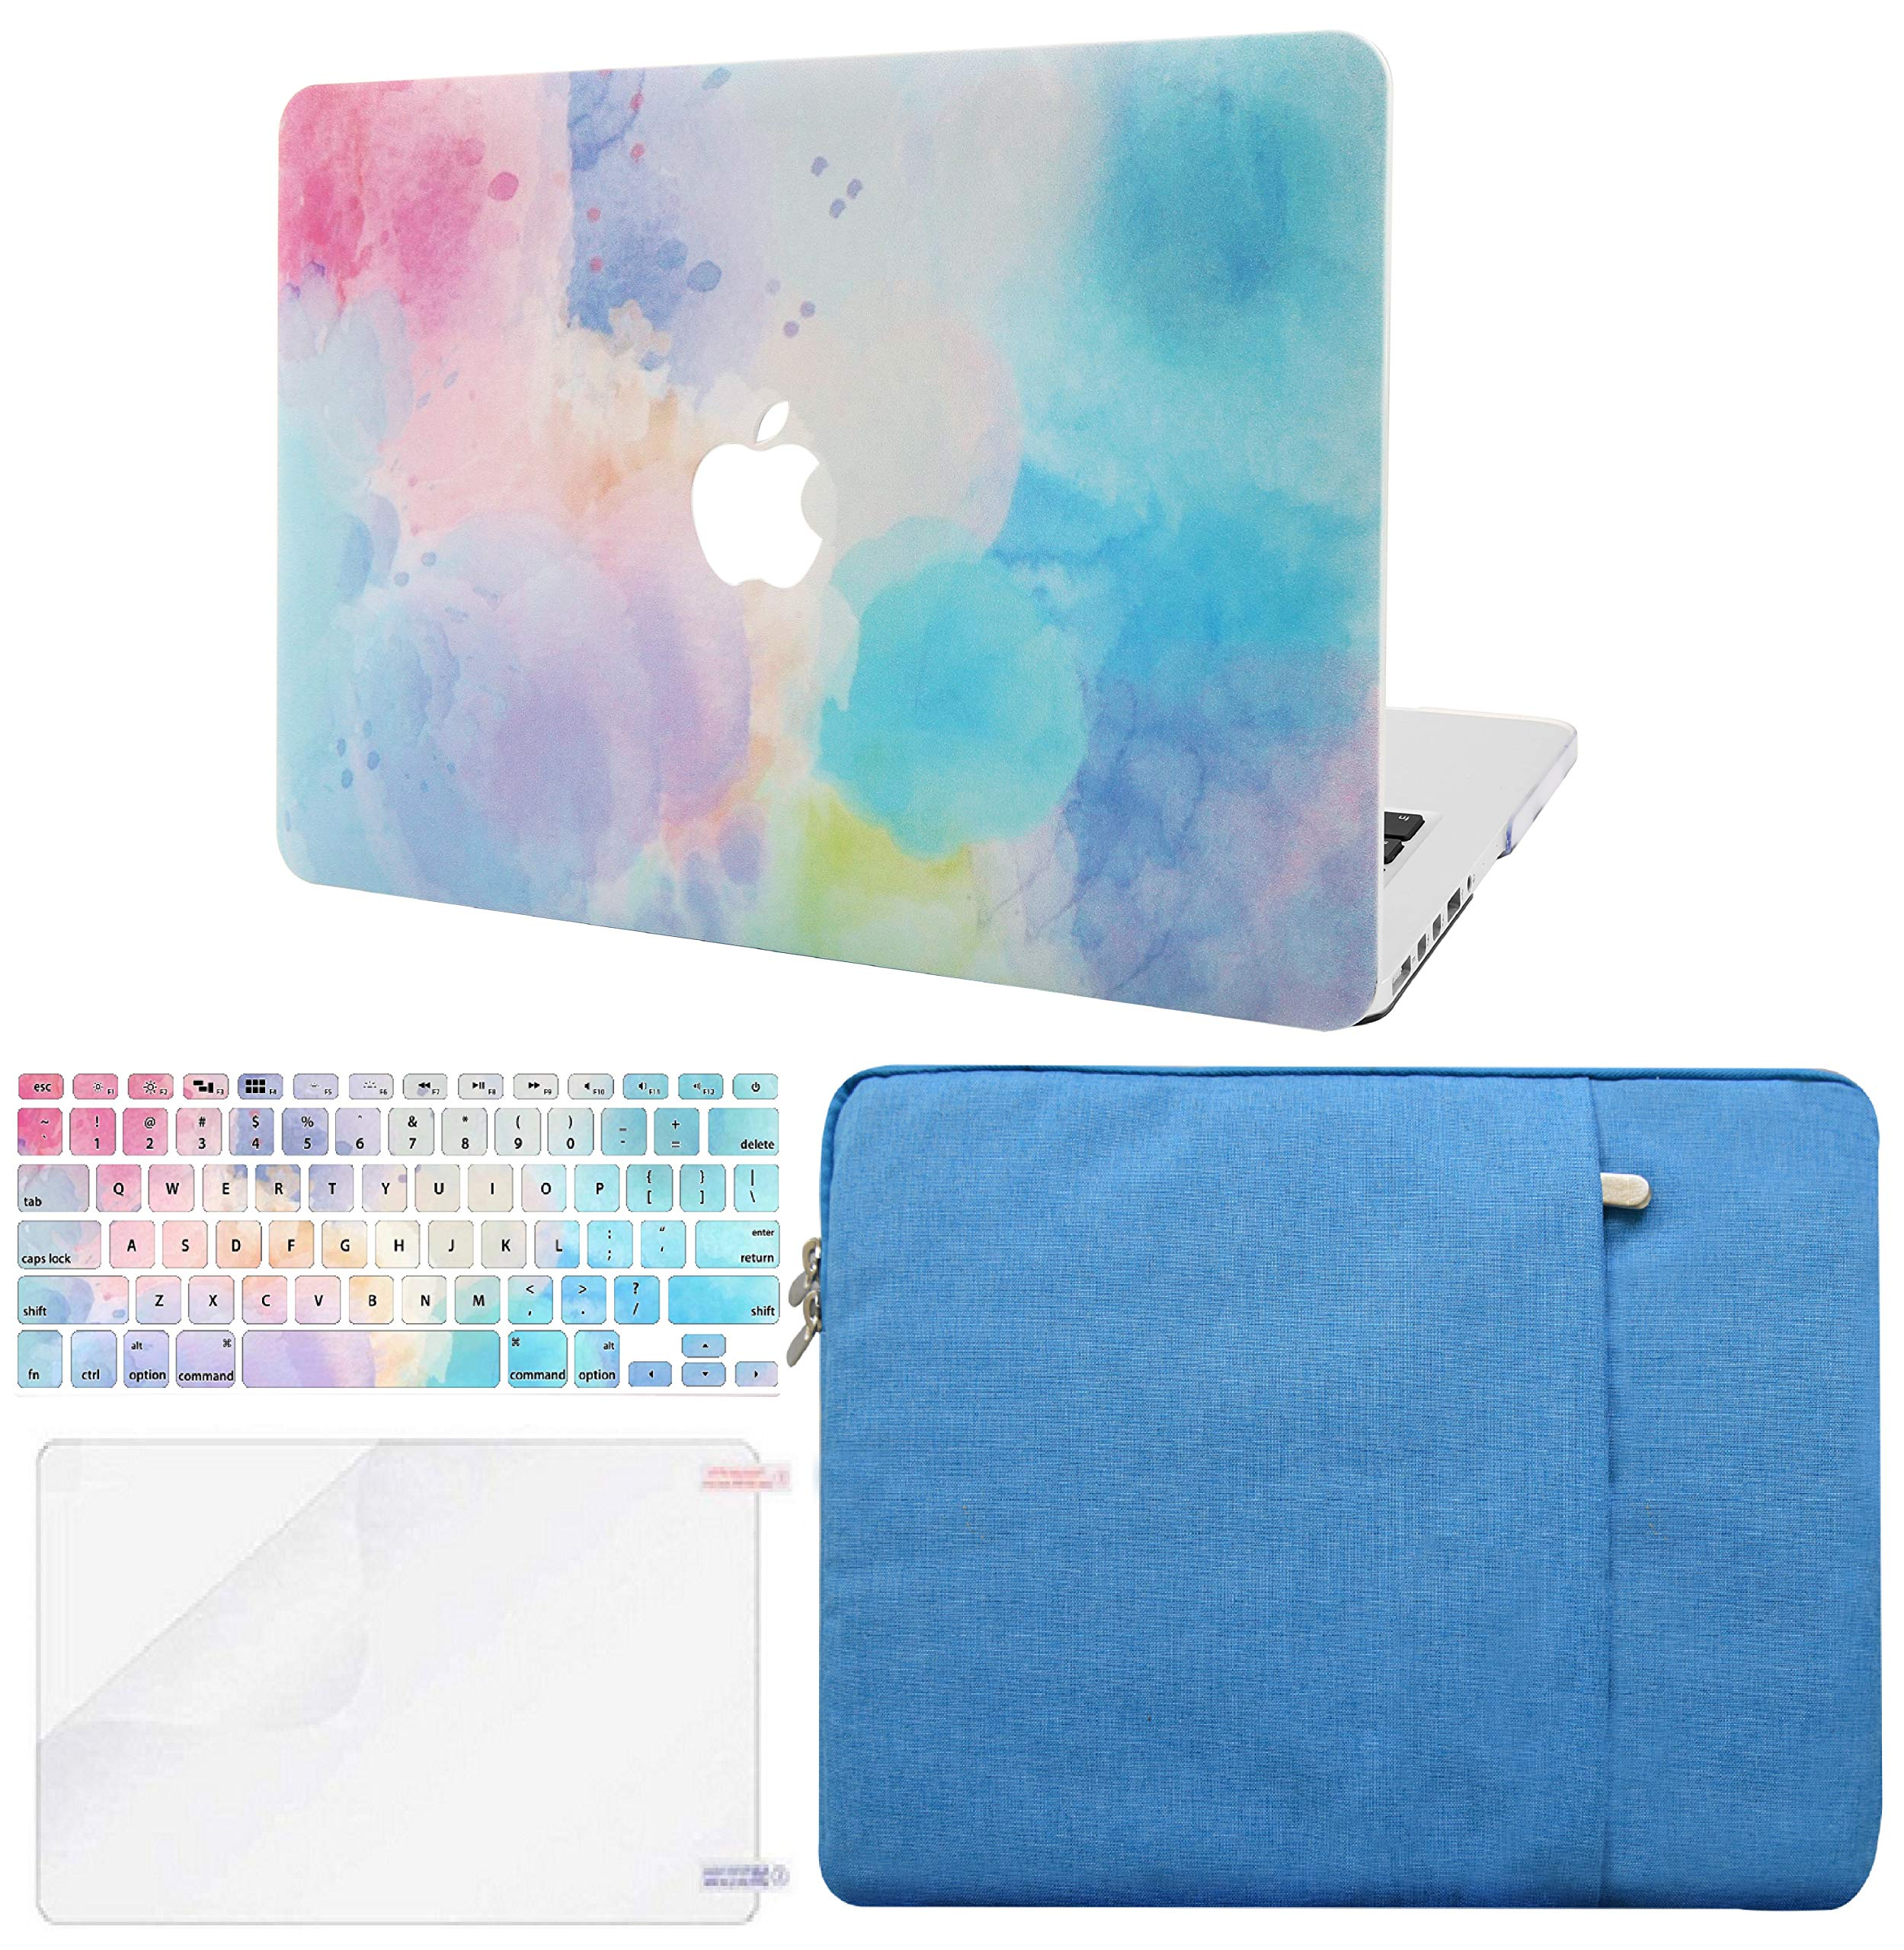 KECC Laptop Case for MacBook Pro 13'' (2019/2018/2017/2016,Touch Bar) w/Keyboard Cover + Sleeve + Screen Protector (4 in 1 Bundle) Hard Shell A2159/A1989/A1706/A1708 (Rainbow Mist 2)